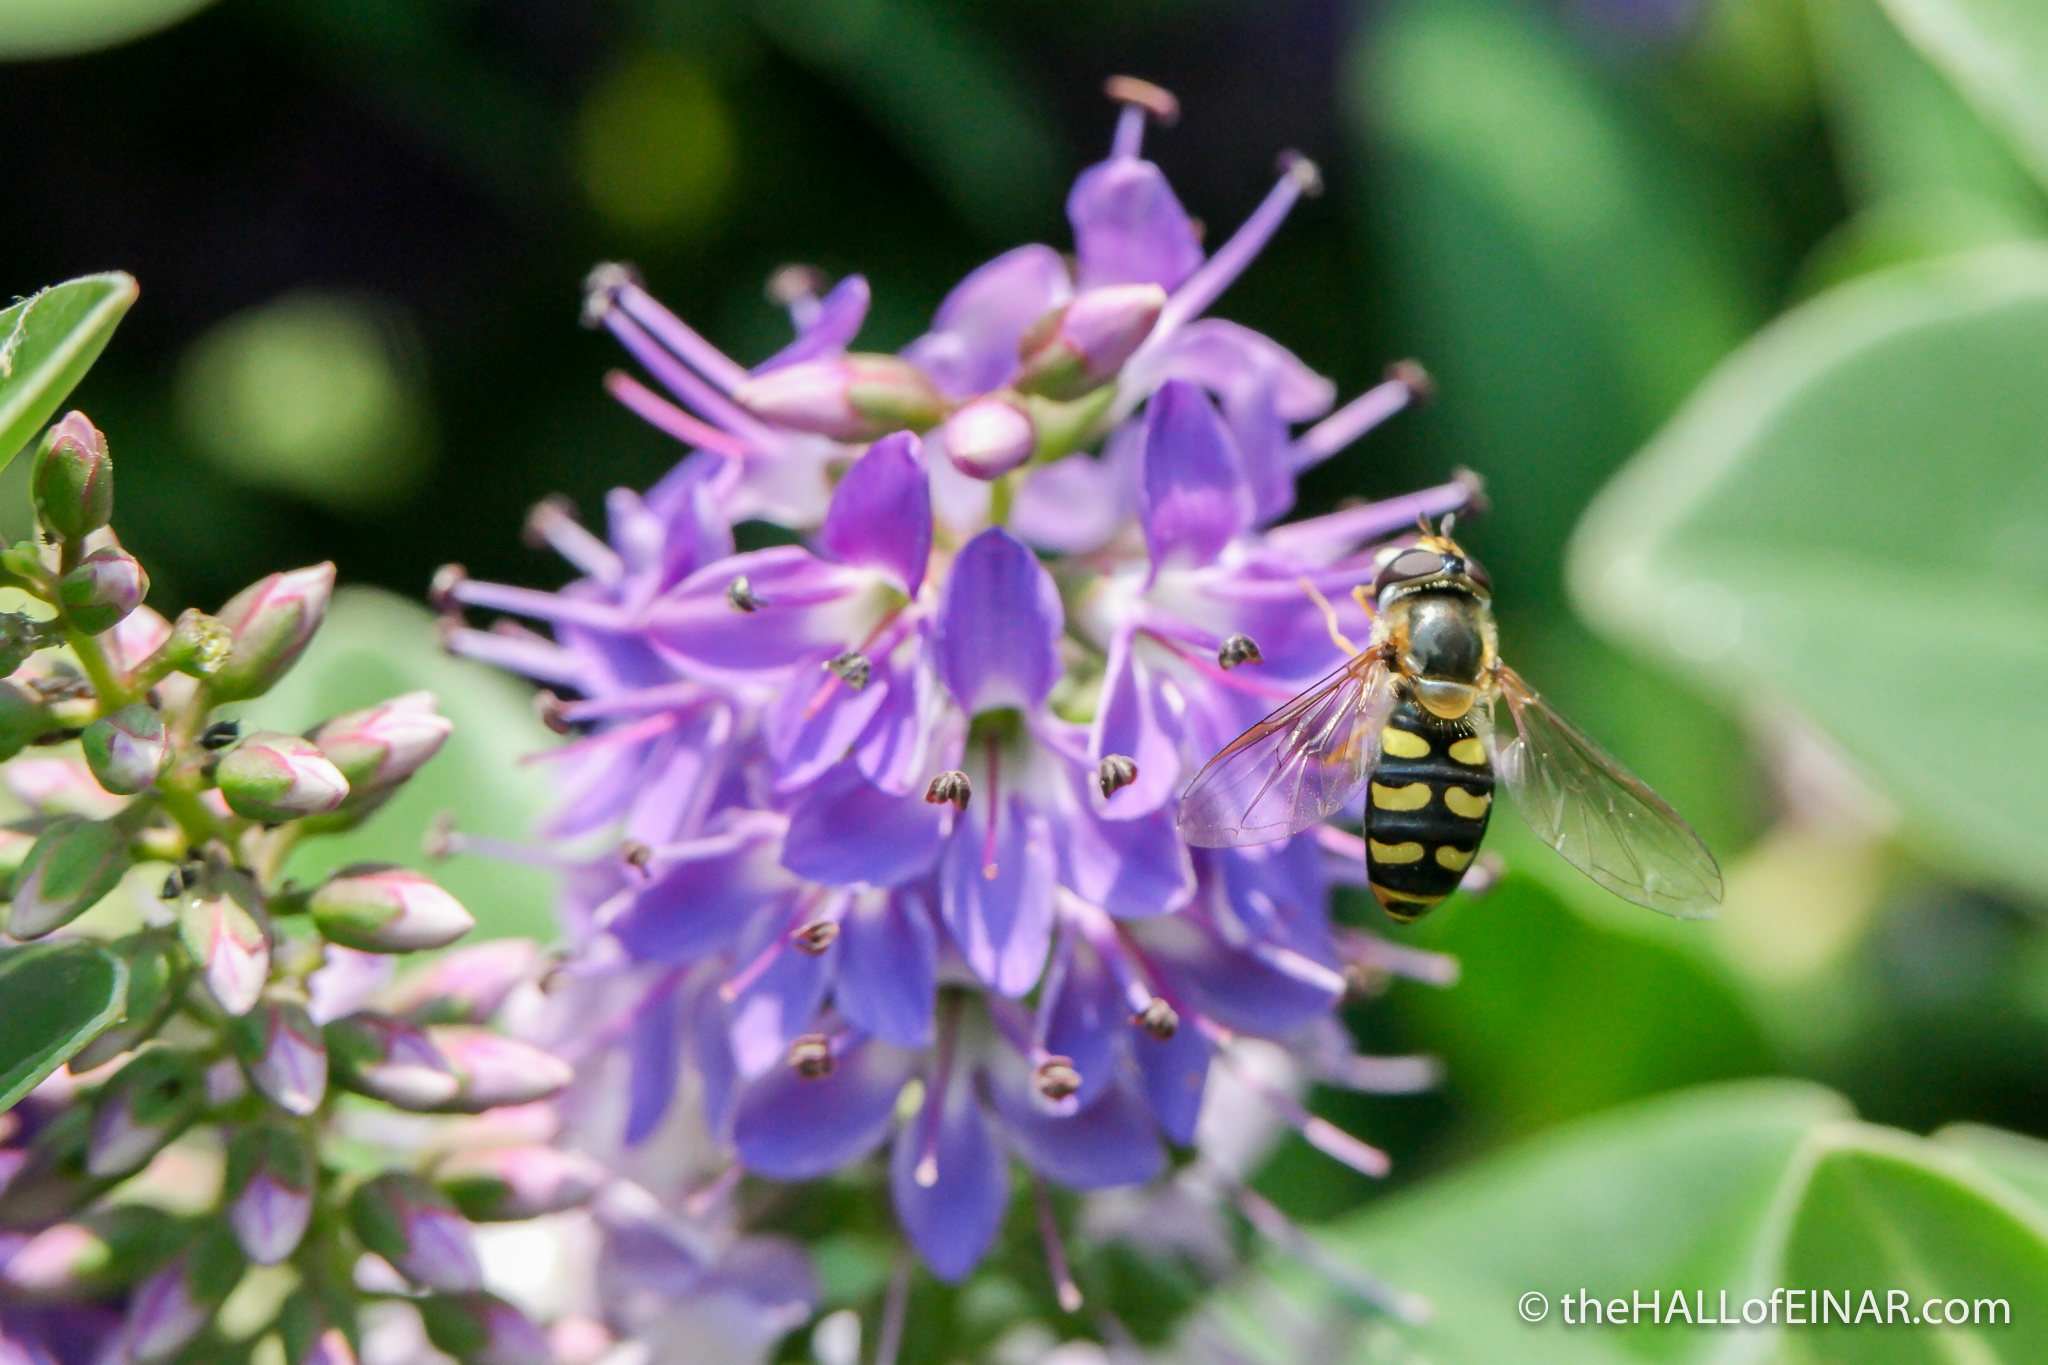 Eupeodes luniger Hoverfly - The Hall of Einar - photograph (c) David Bailey (not the)